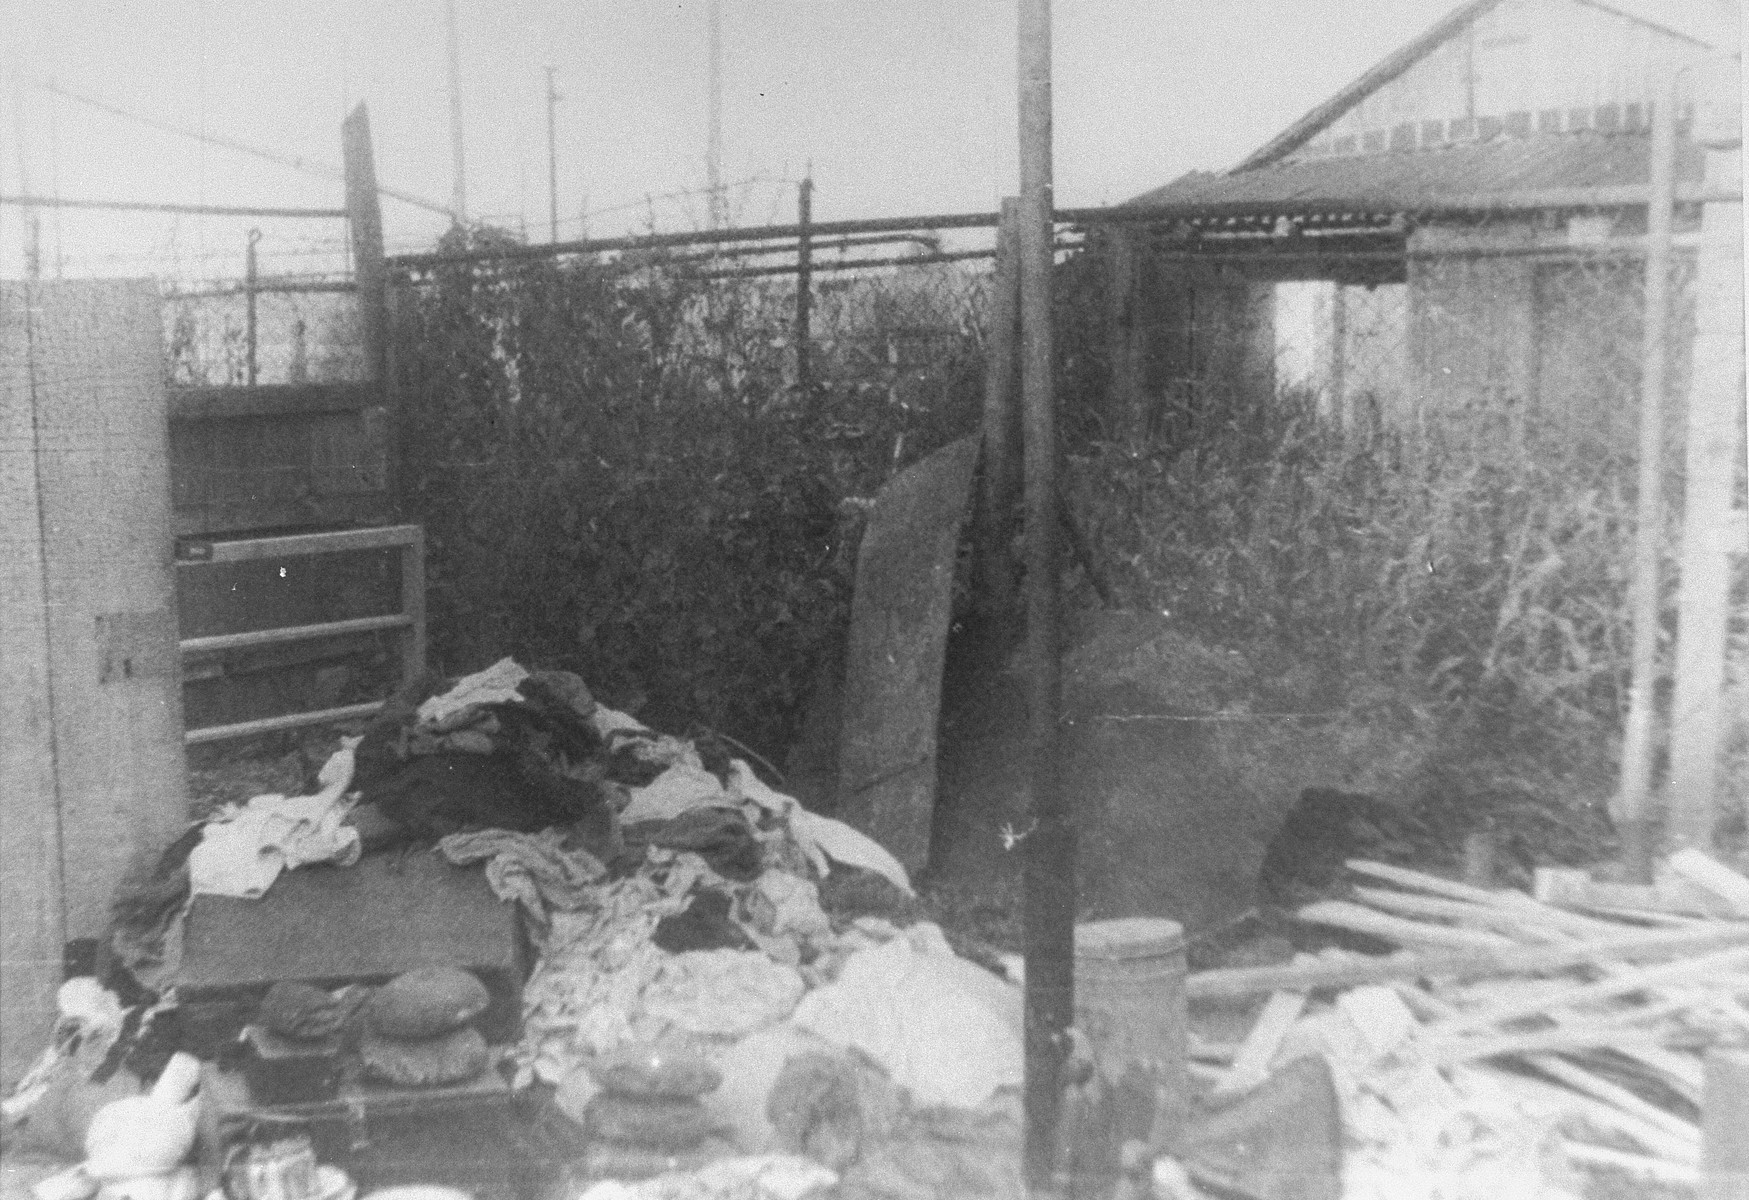 View of a former hiding place of Sabina Haberman, after its discovery.   Seen are the belongings of its inhabitants.